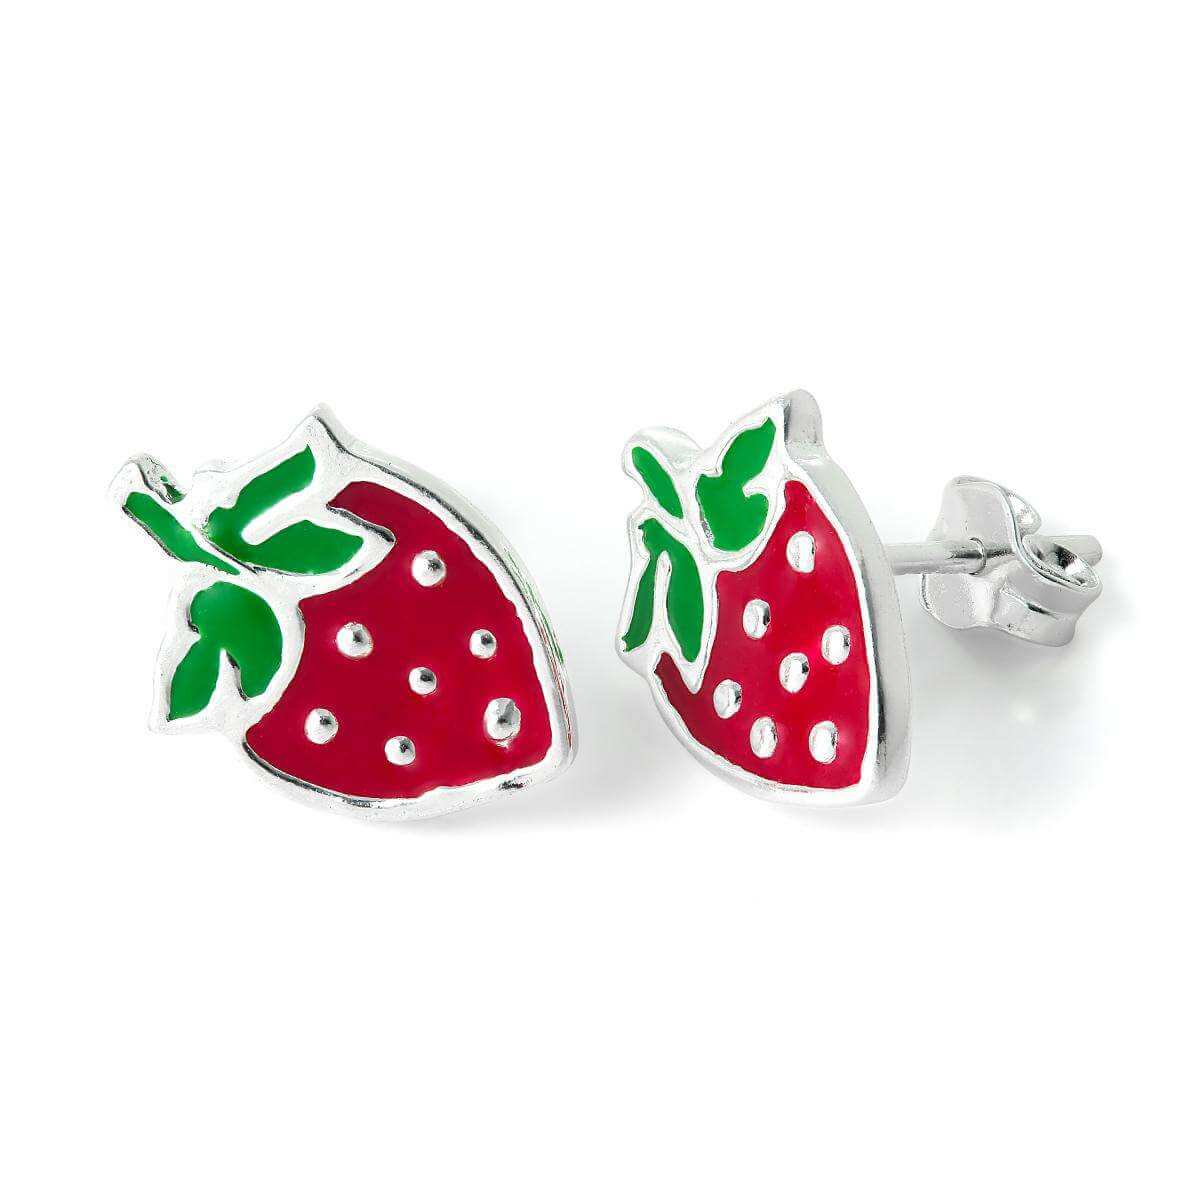 jewelry hornig strawberry joanhornigjewelry products stud earrings joan